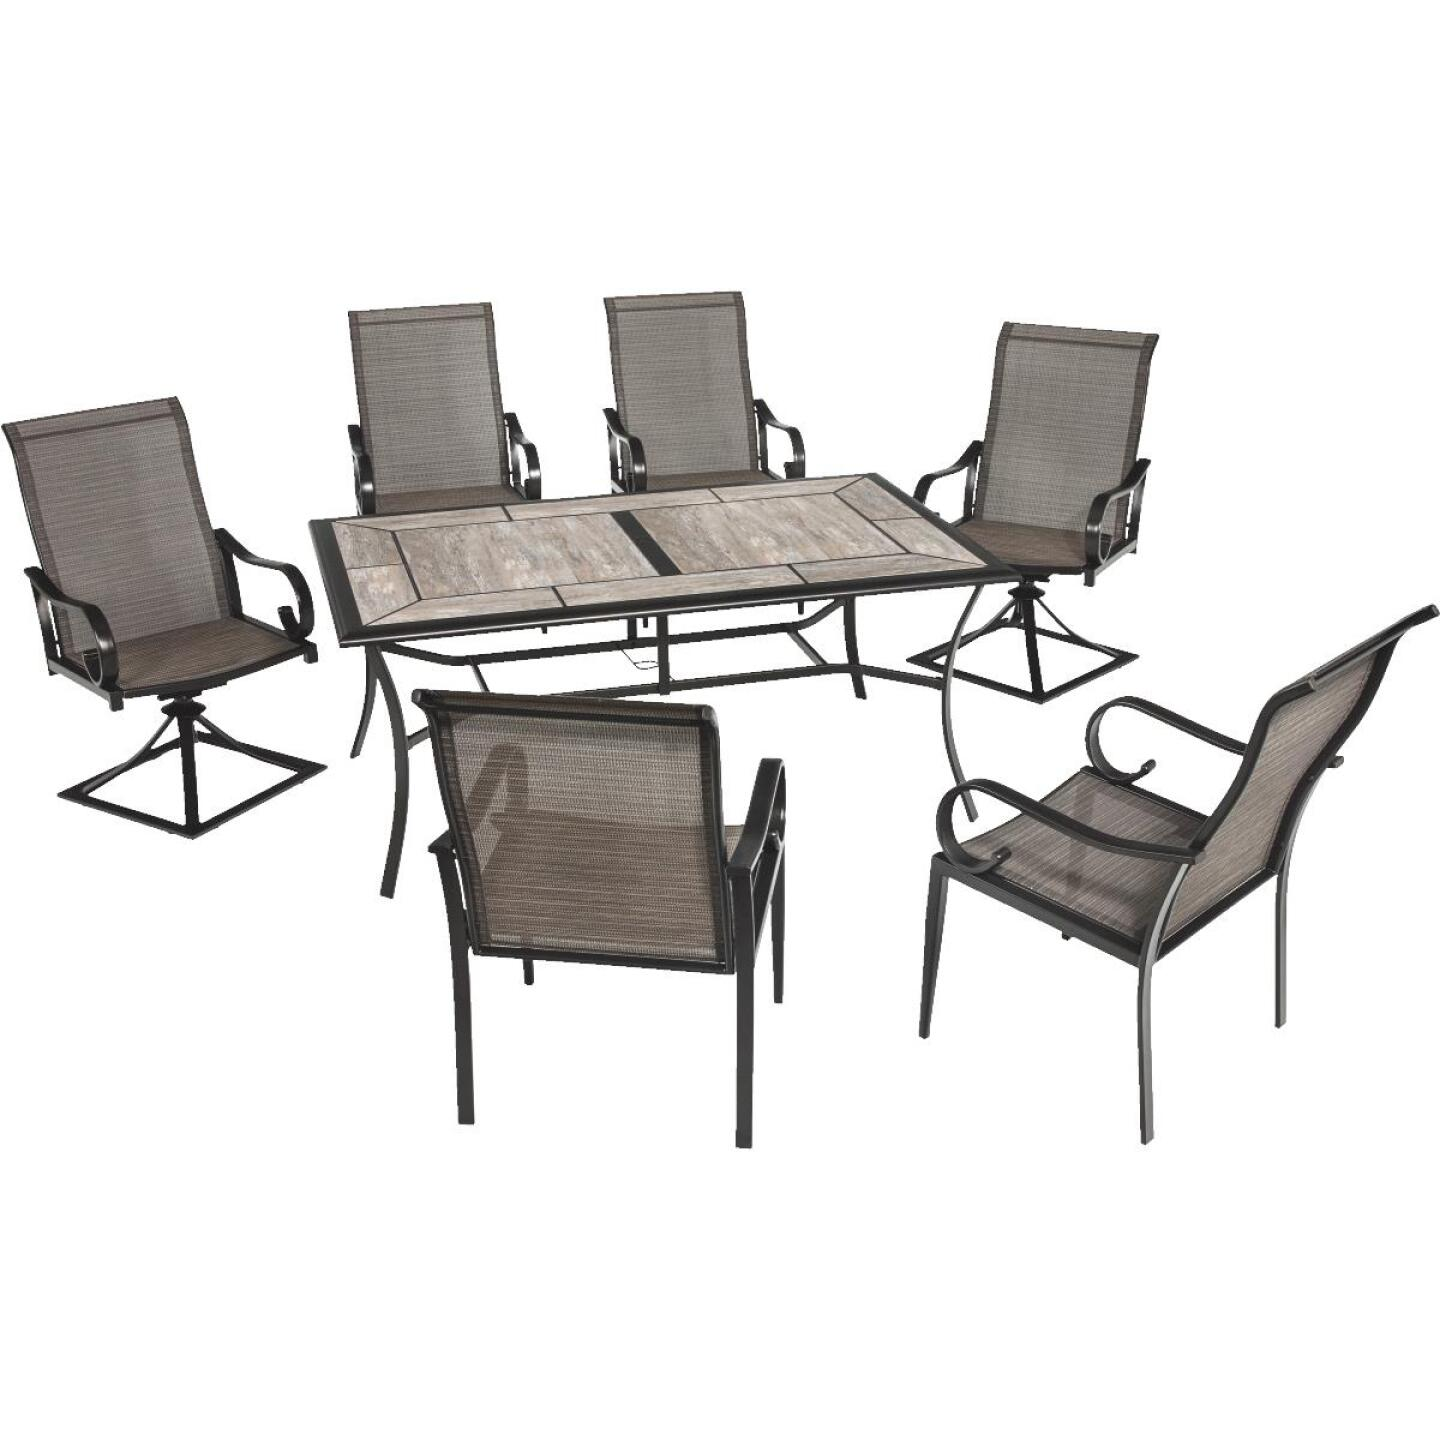 Outdoor Expressions Berkshire 7-Piece Dining Set Image 153